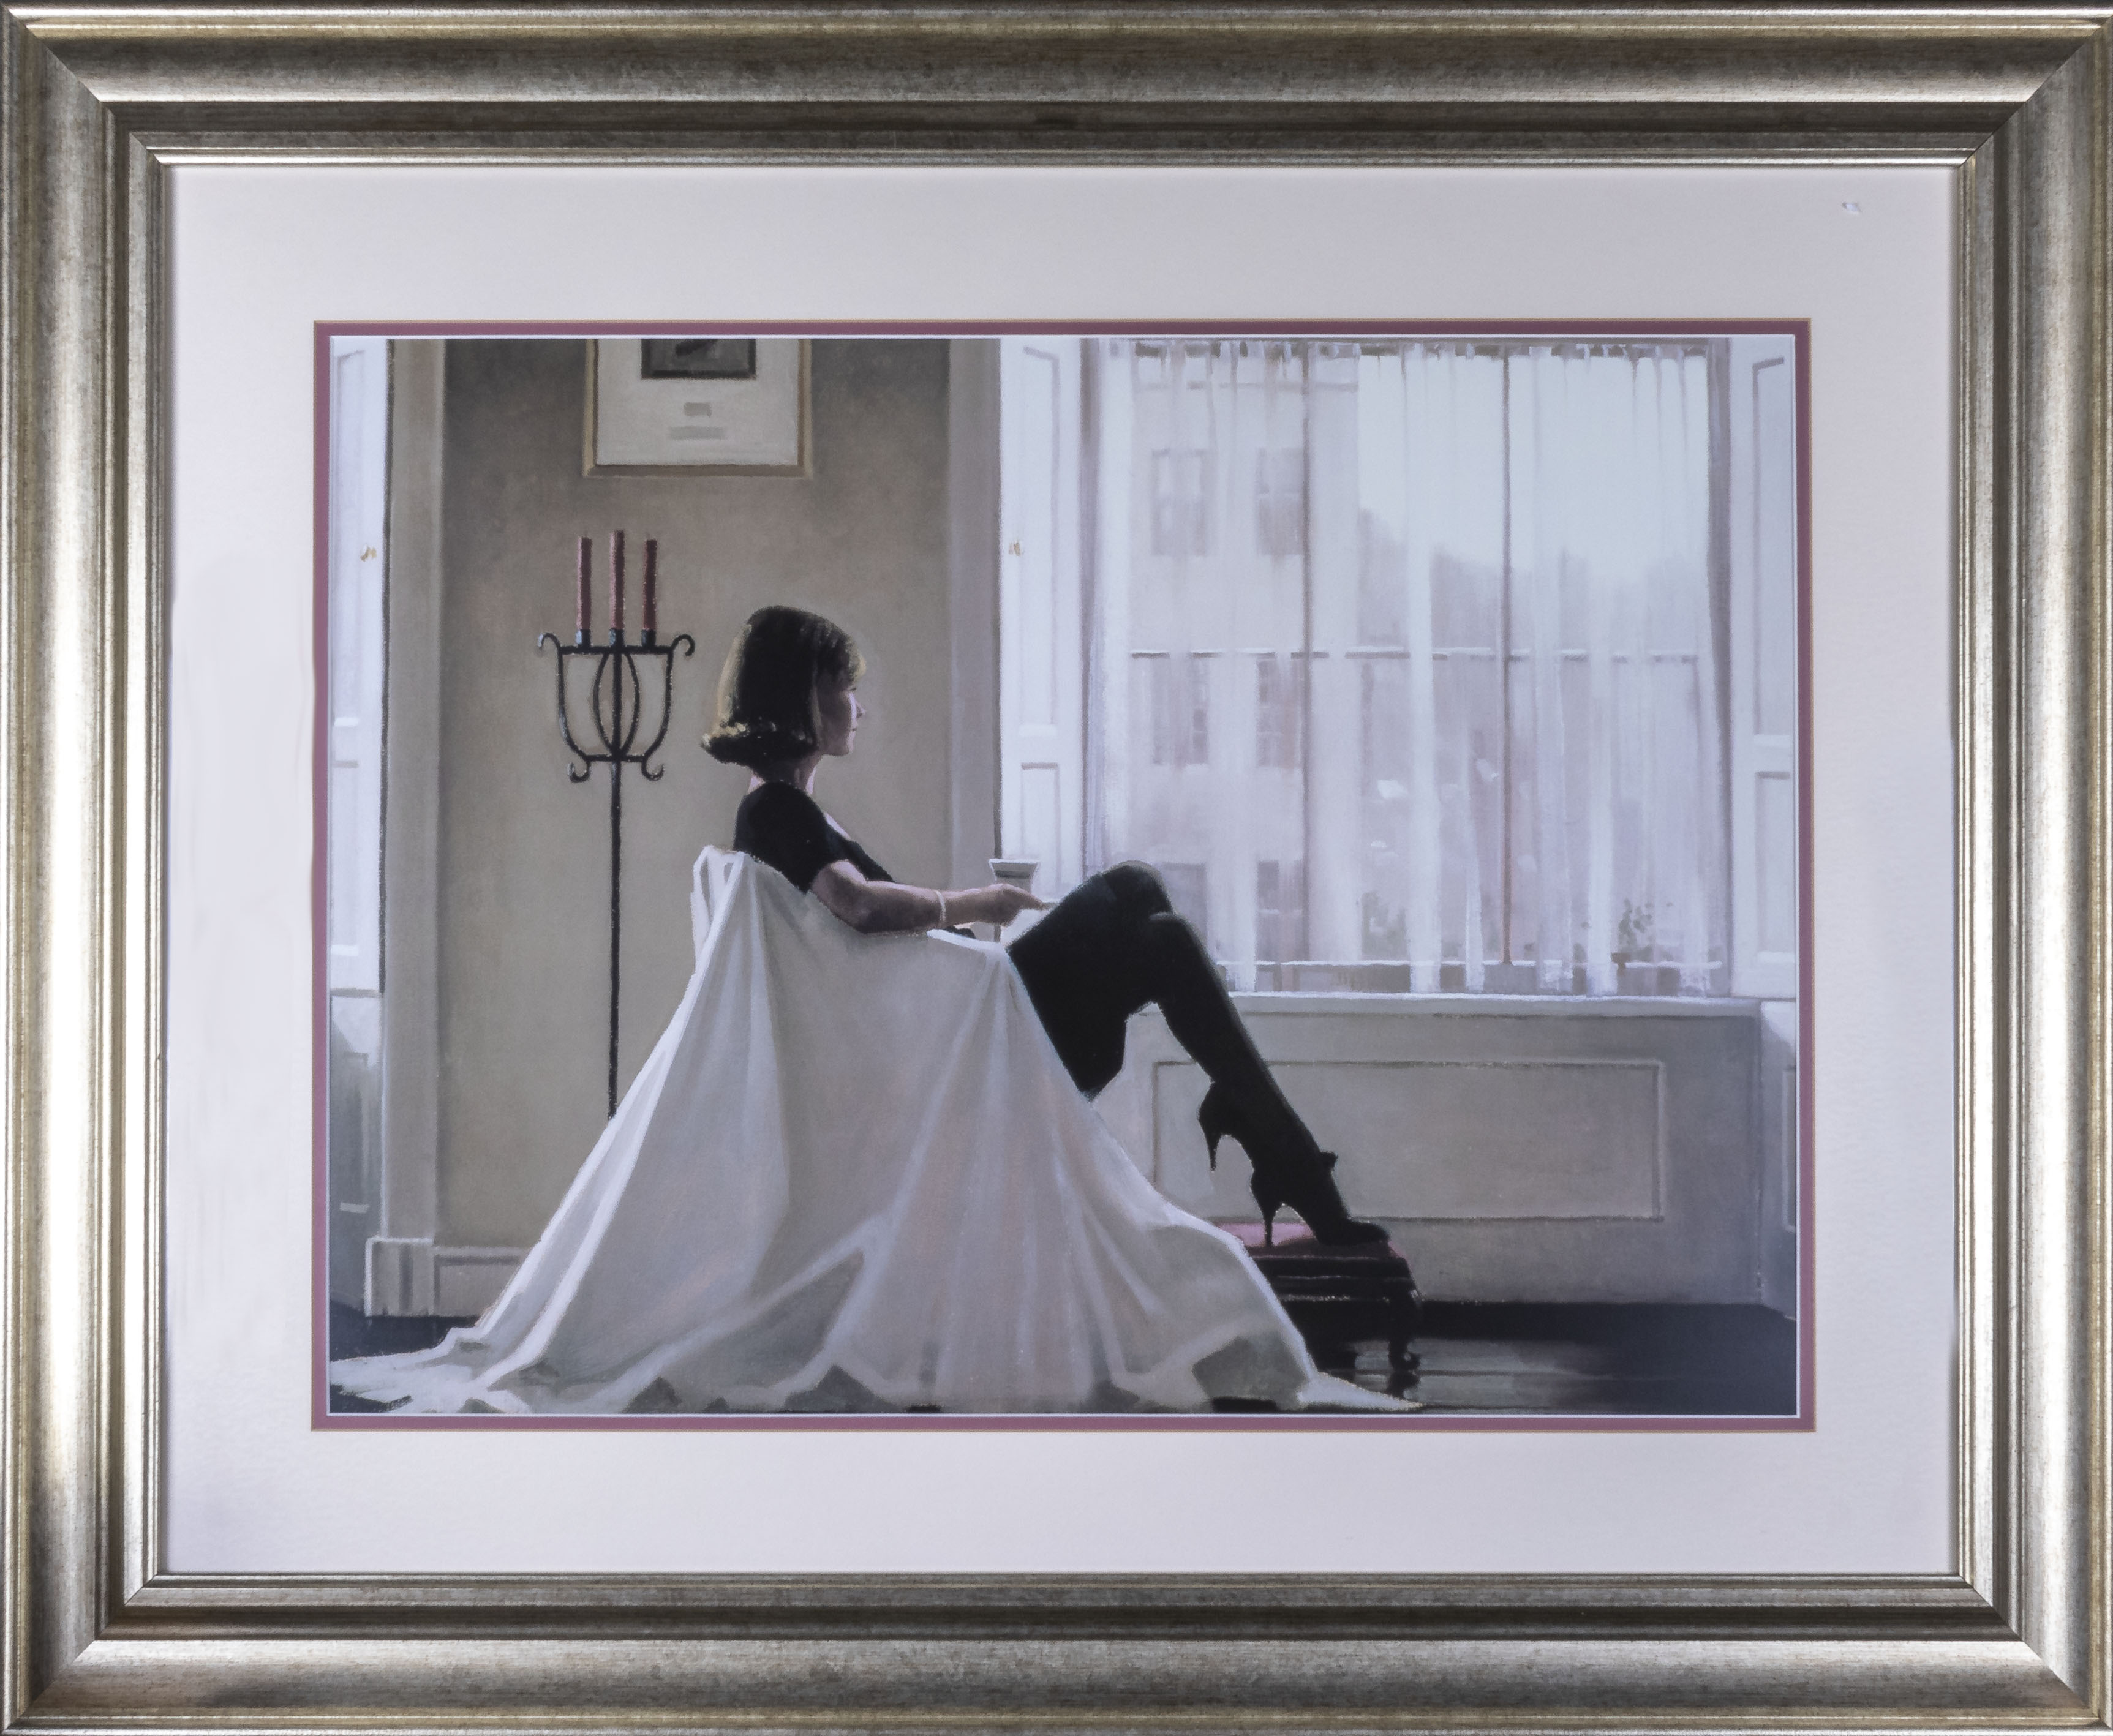 Lot 16 - In Thoughts of You, framed art print by Jack Vettriano, total size 75cm x 92cm